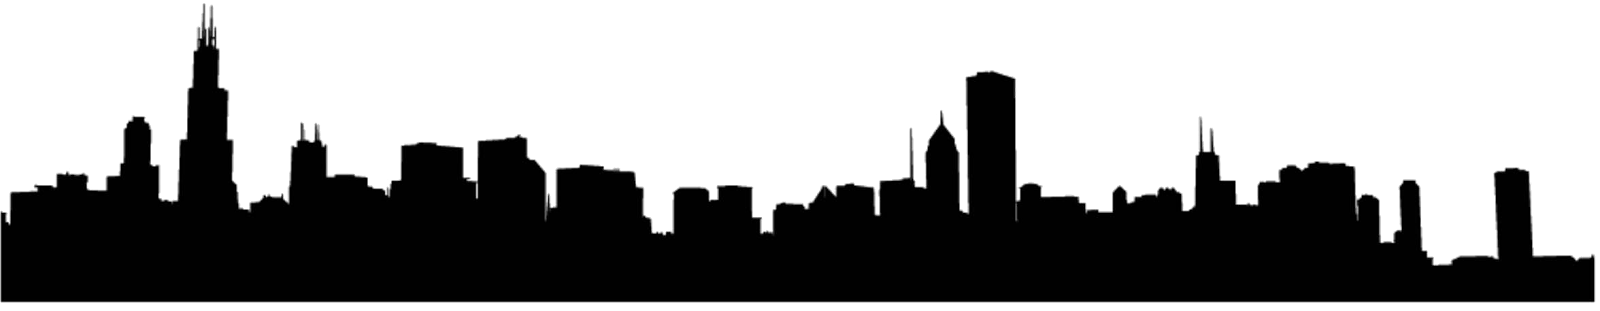 1600x311 Tex And The Cities Washington D.c.